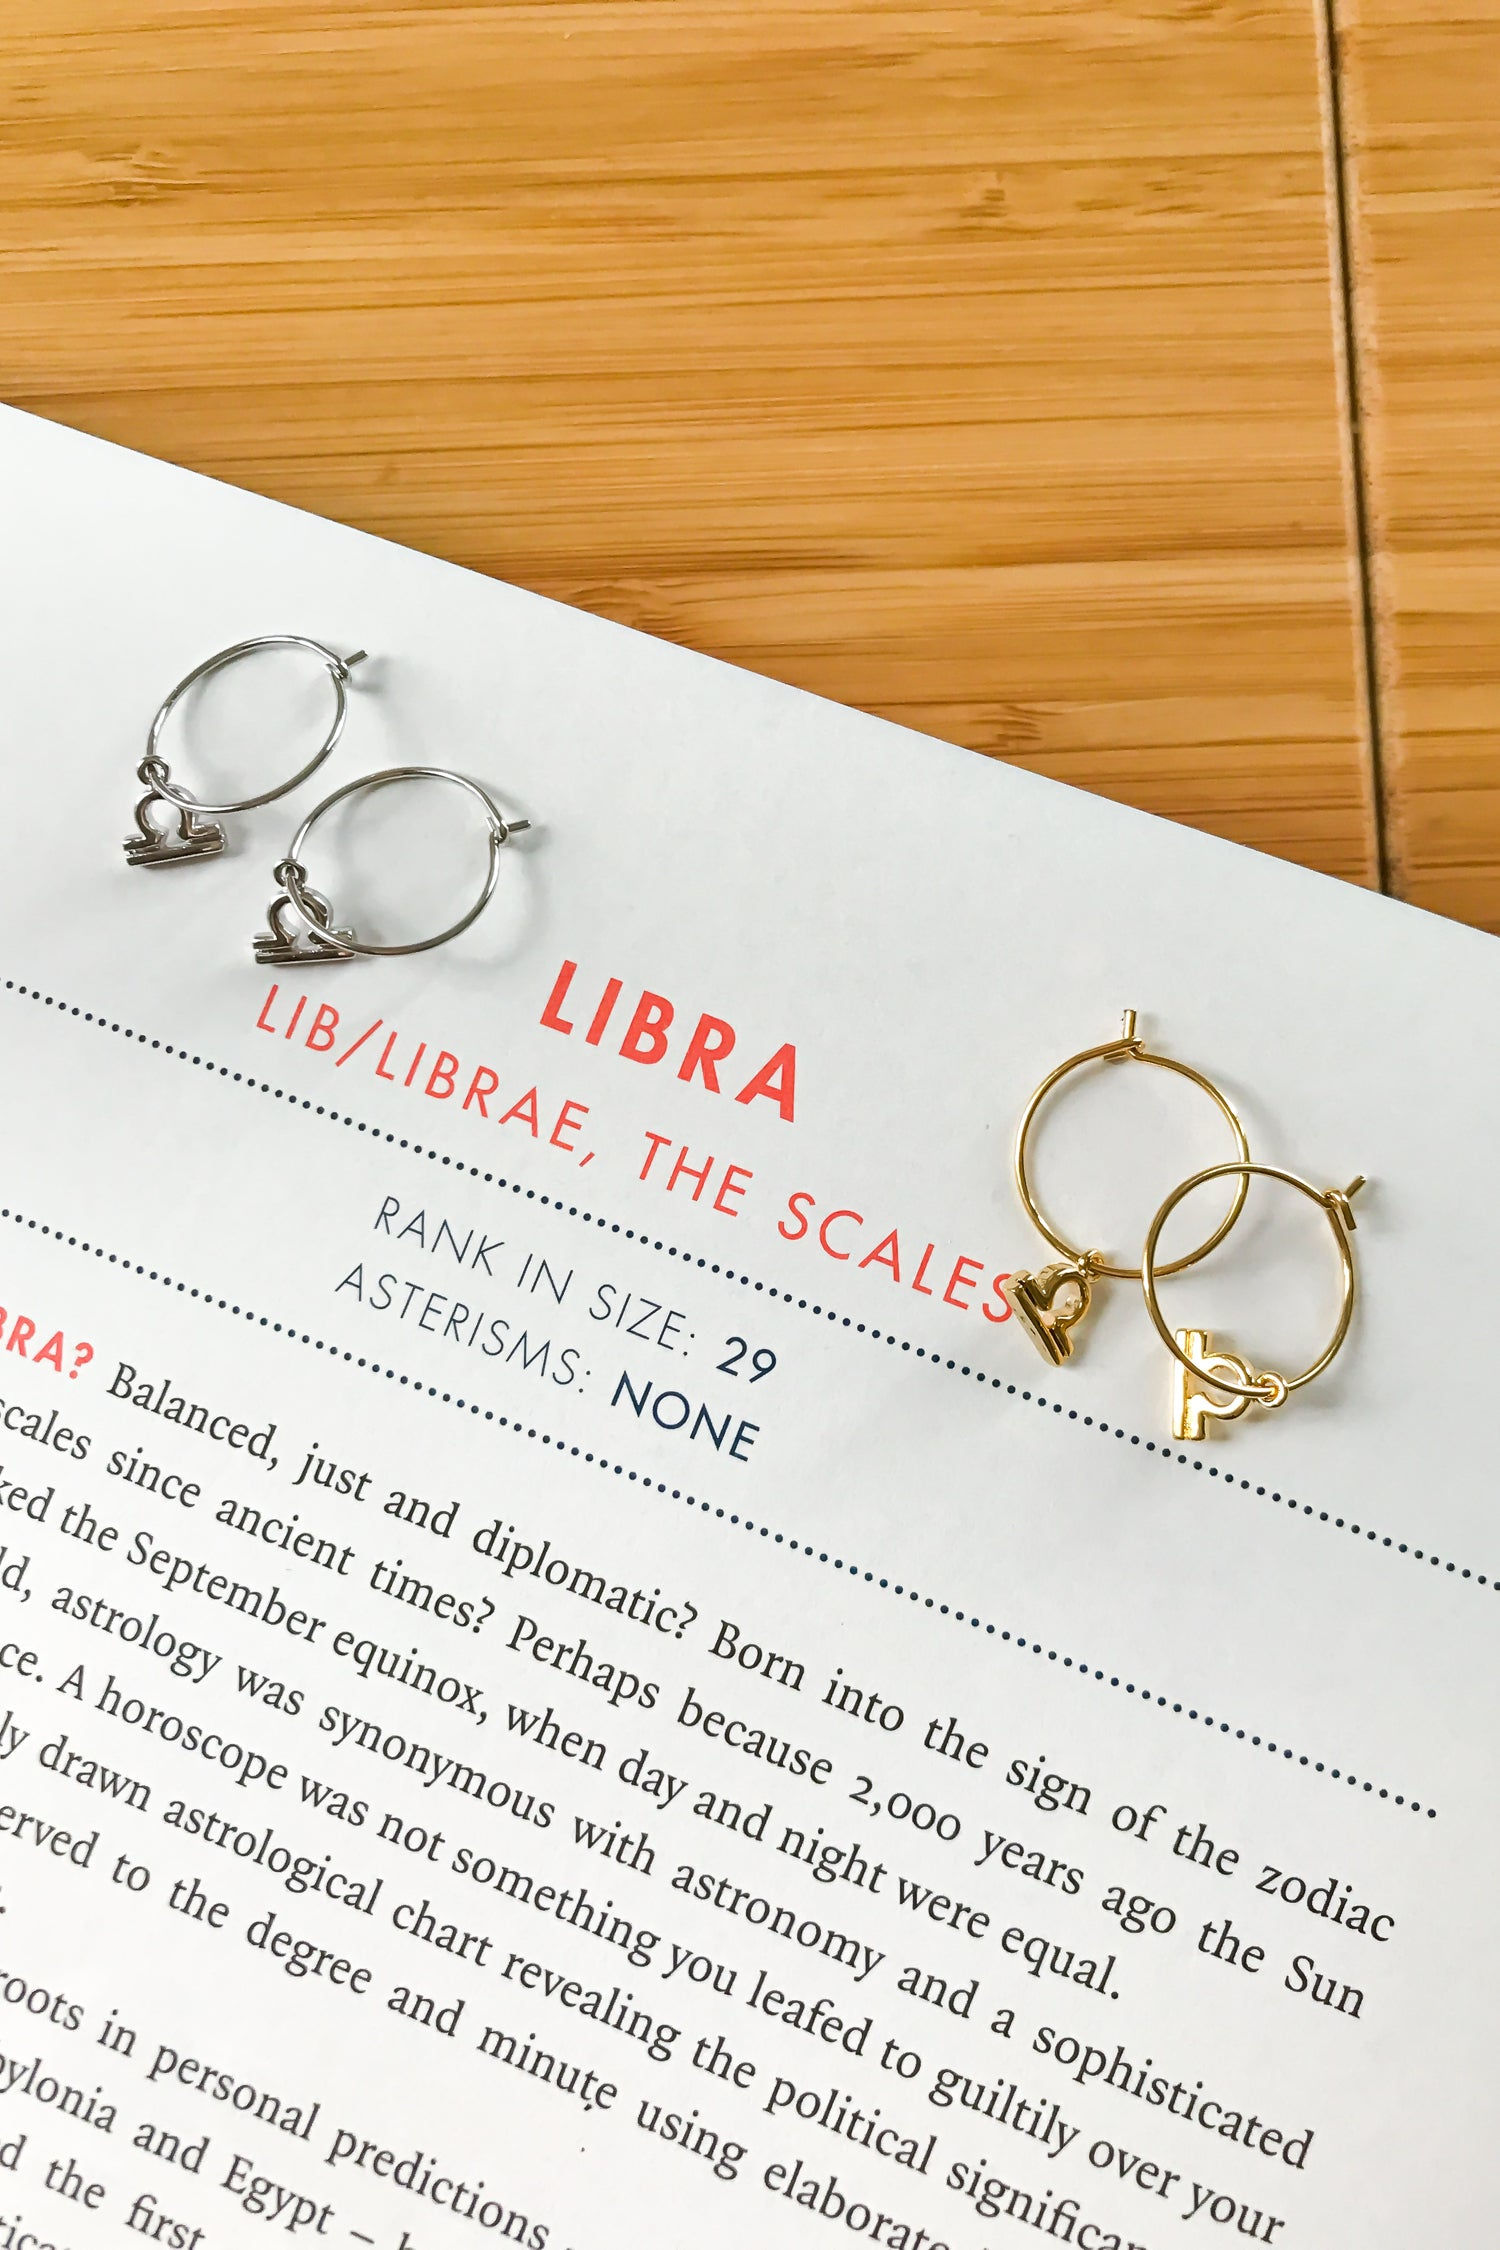 Libra mini hoop earrings